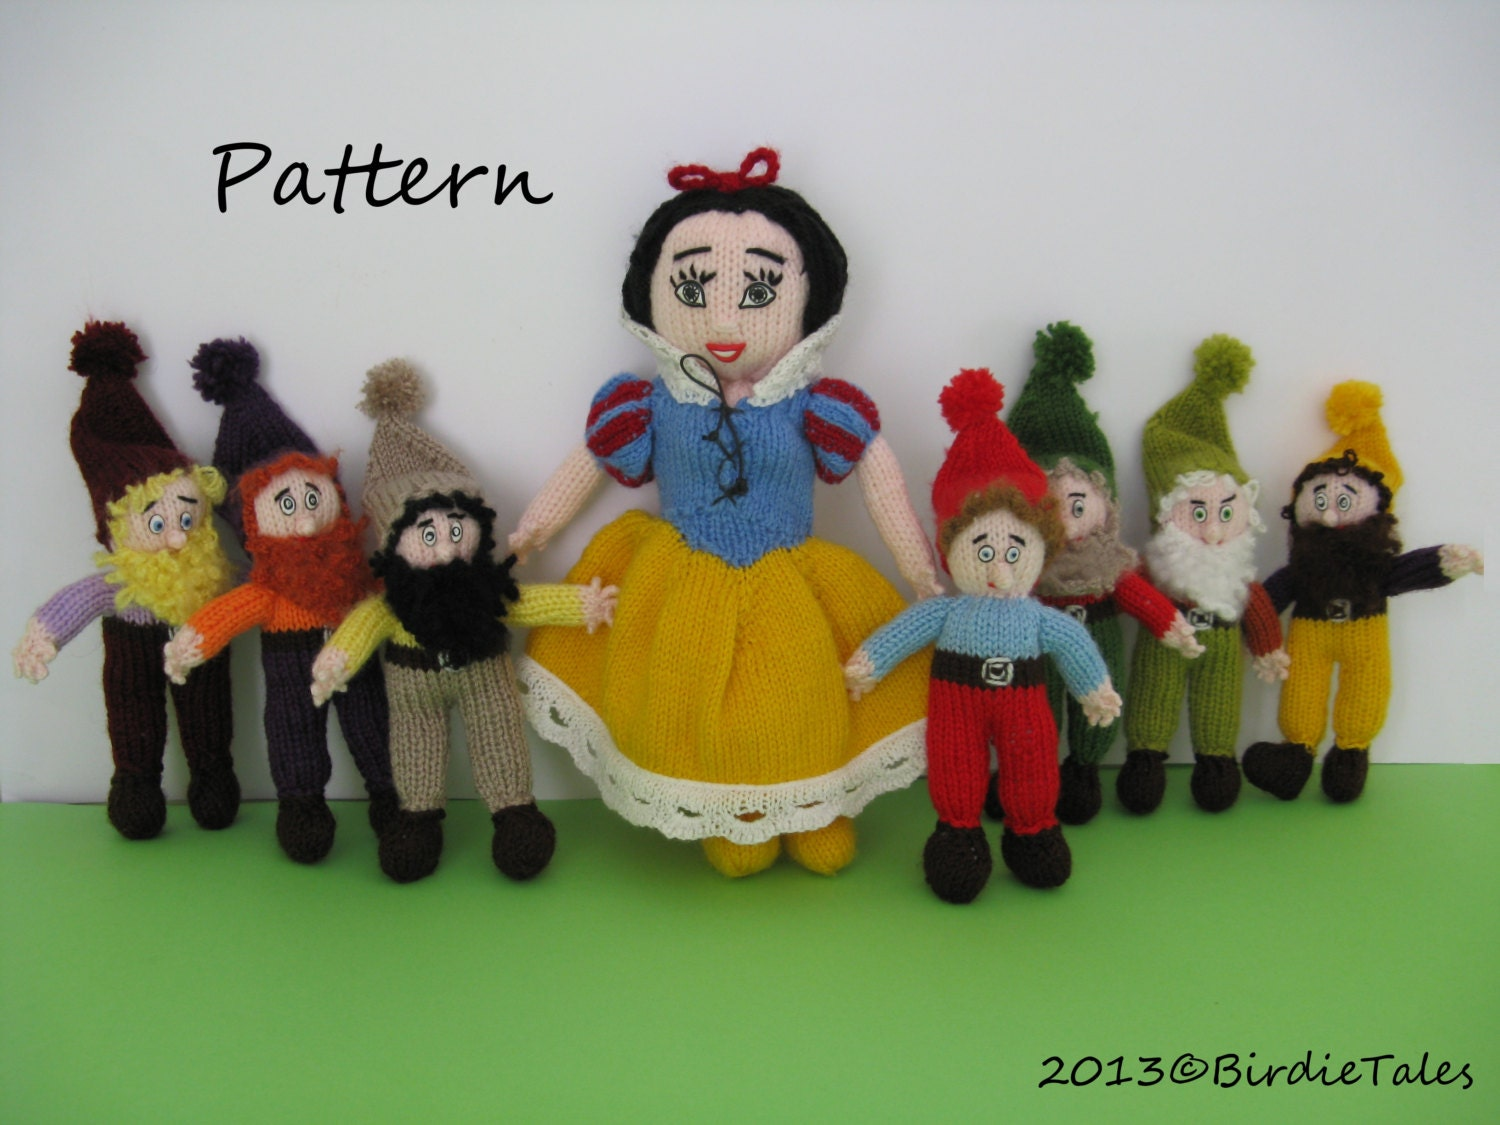 Knitted Dolls Snow White And The Seven Dwarfs Pdf Pattern